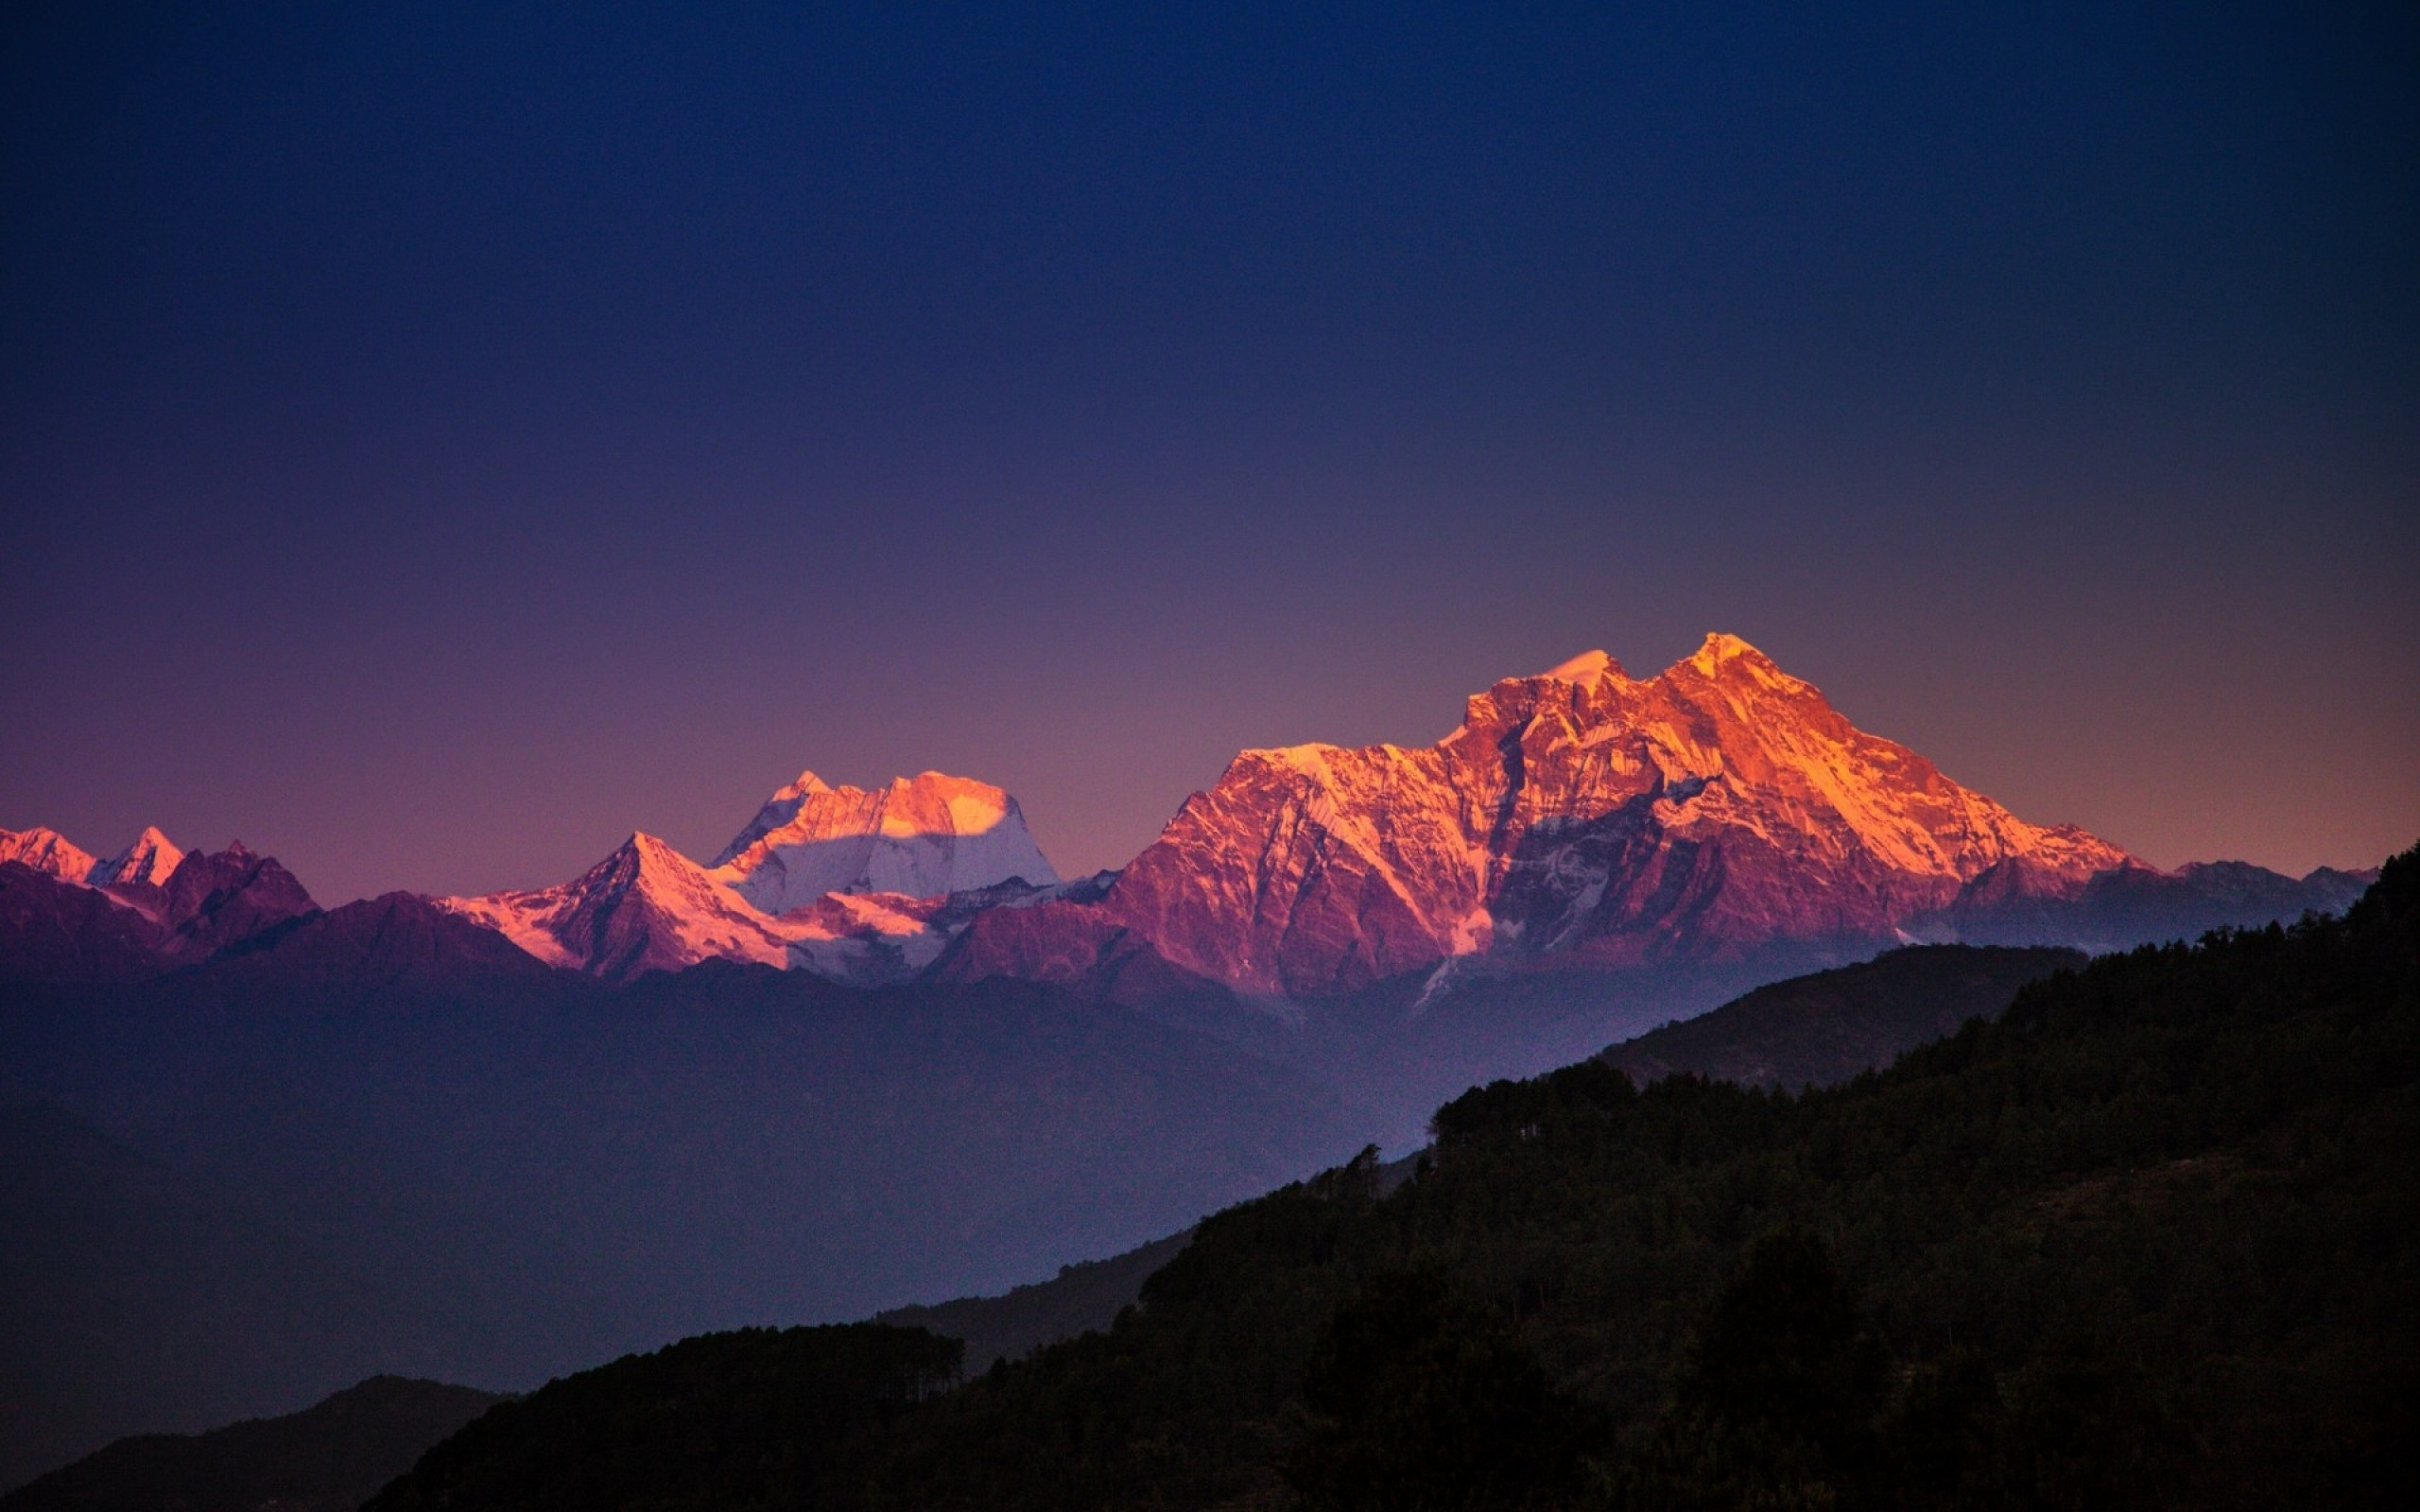 himalaya mountains hd wallpaper - photo #9